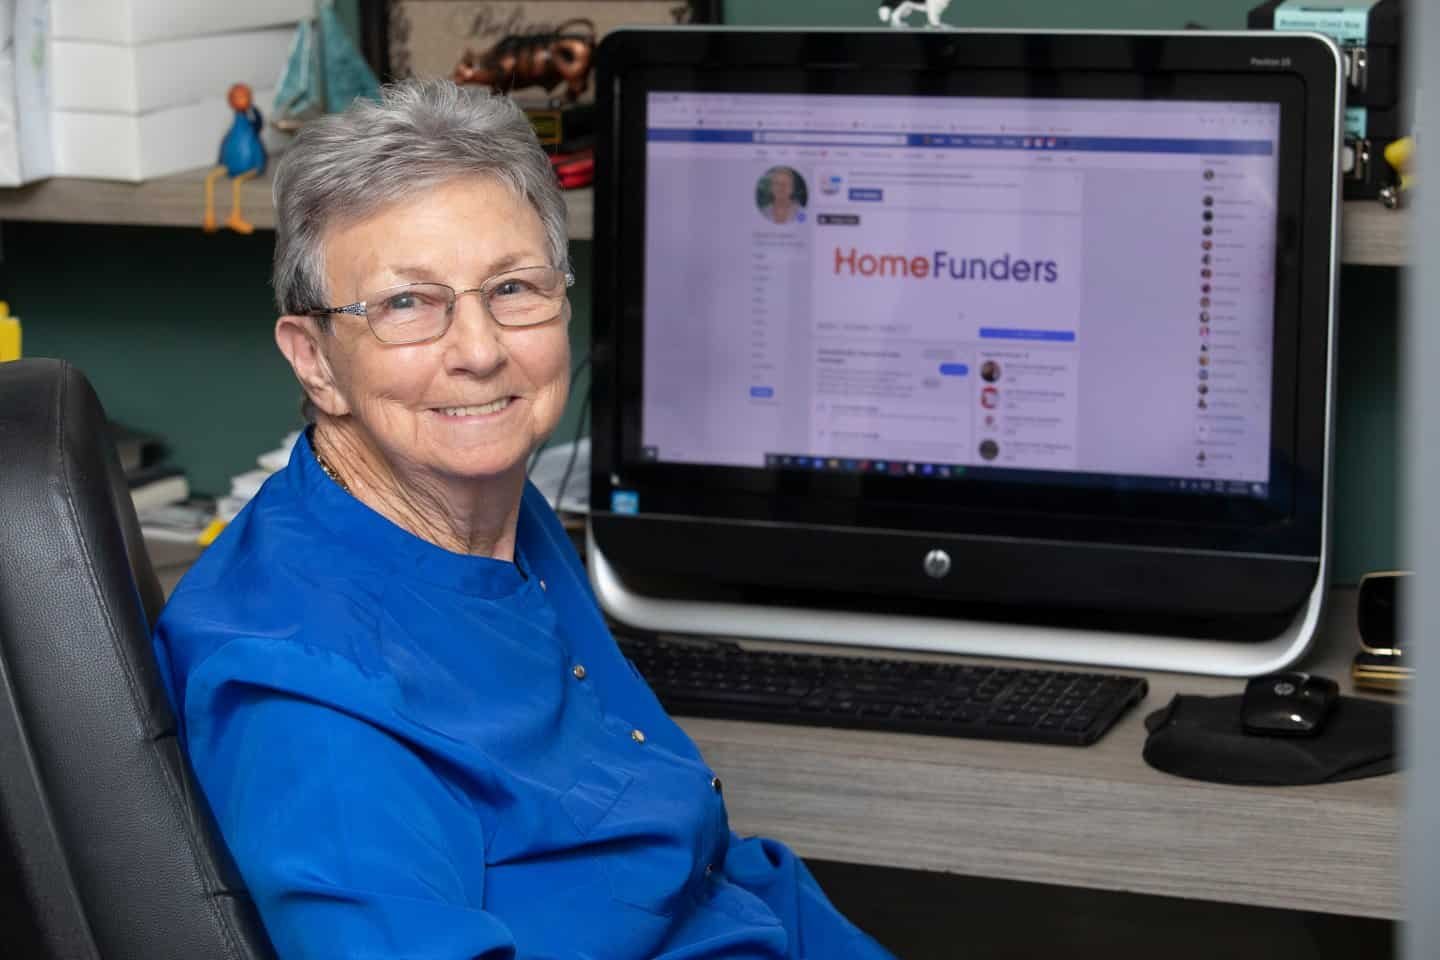 image of Gayle Copeland, owner of Home Funders Australia, at her desk working